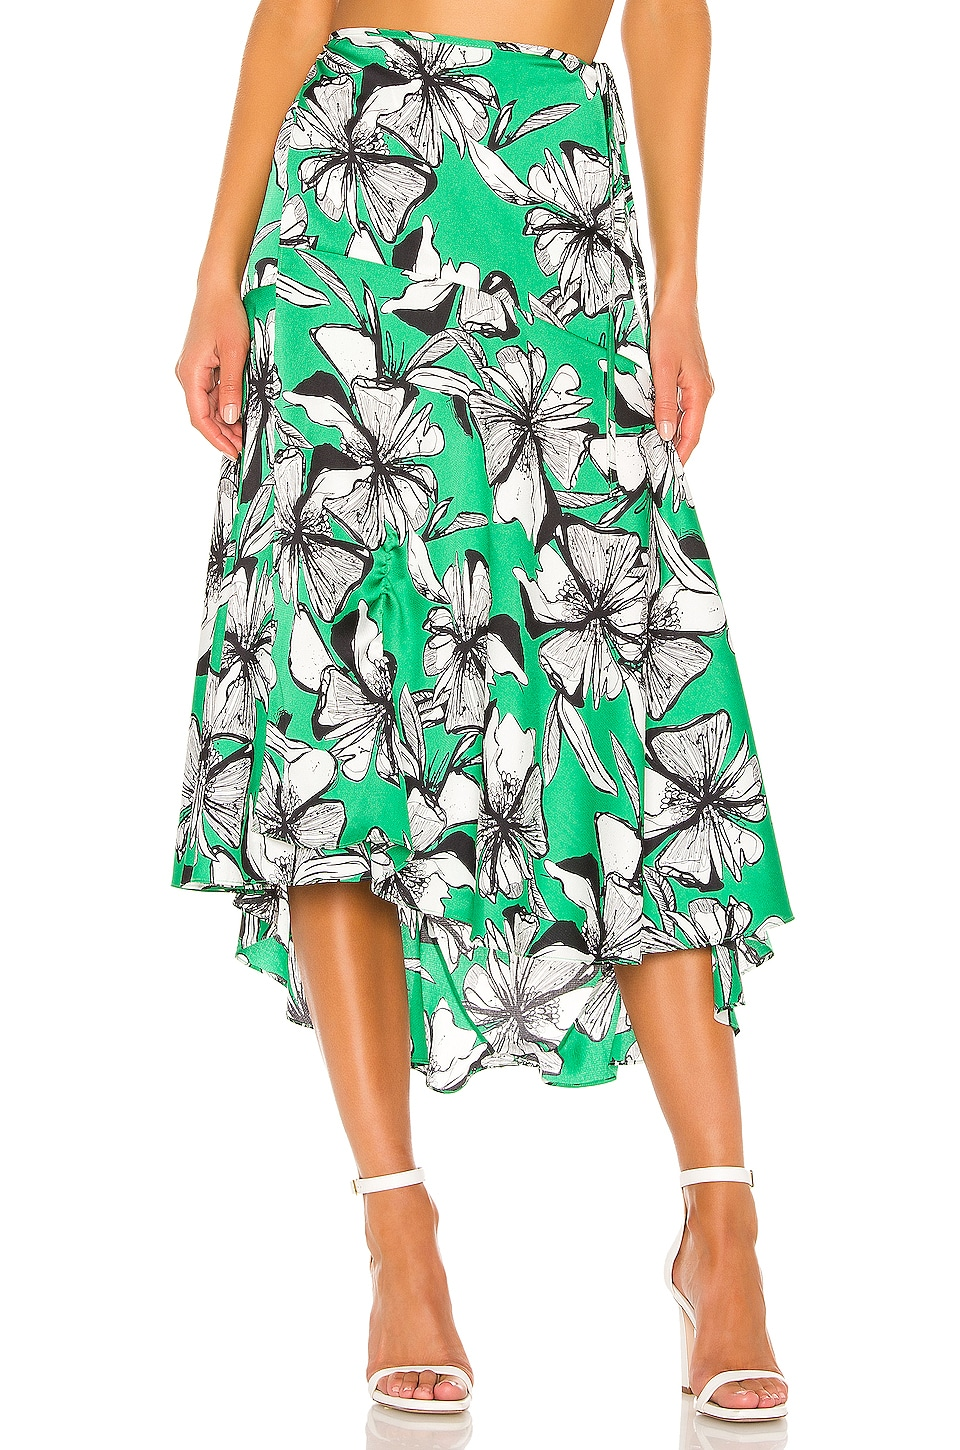 Alexis Lyons Skirt in Emerald Floral